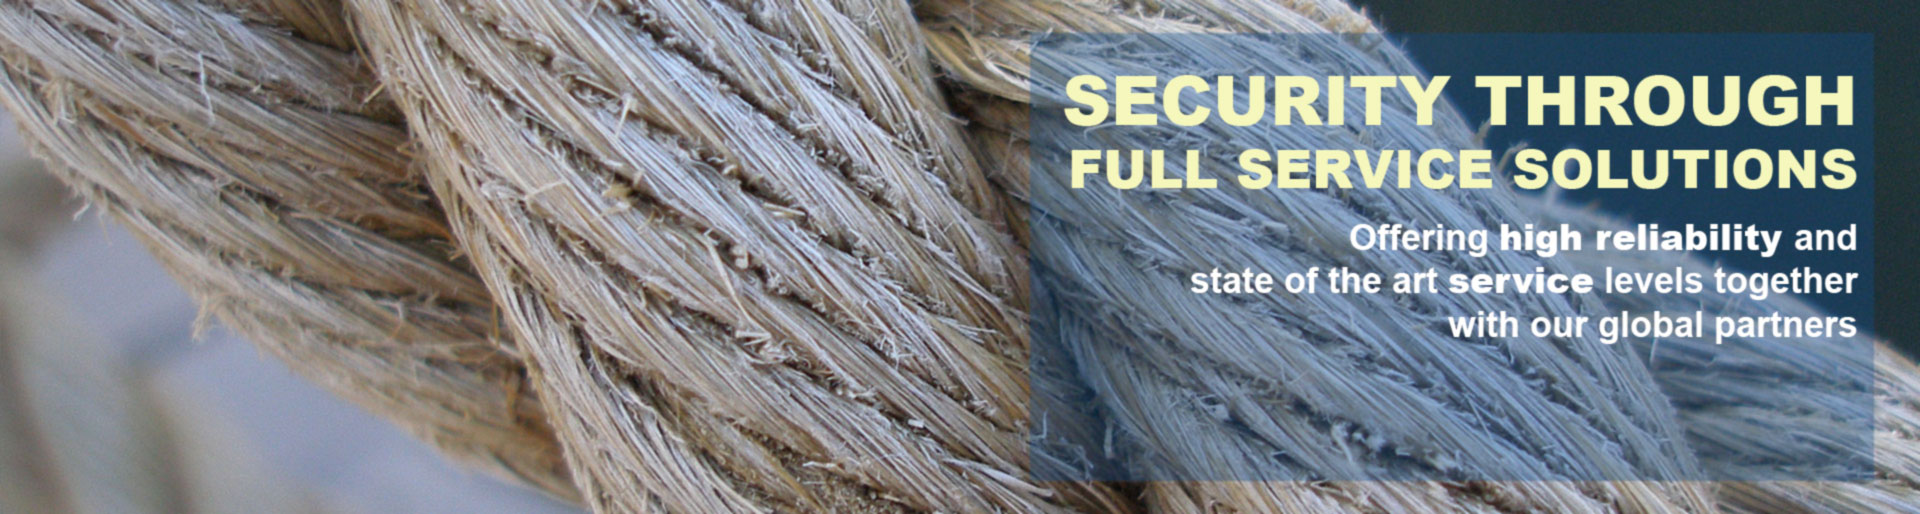 Security with full service solutions